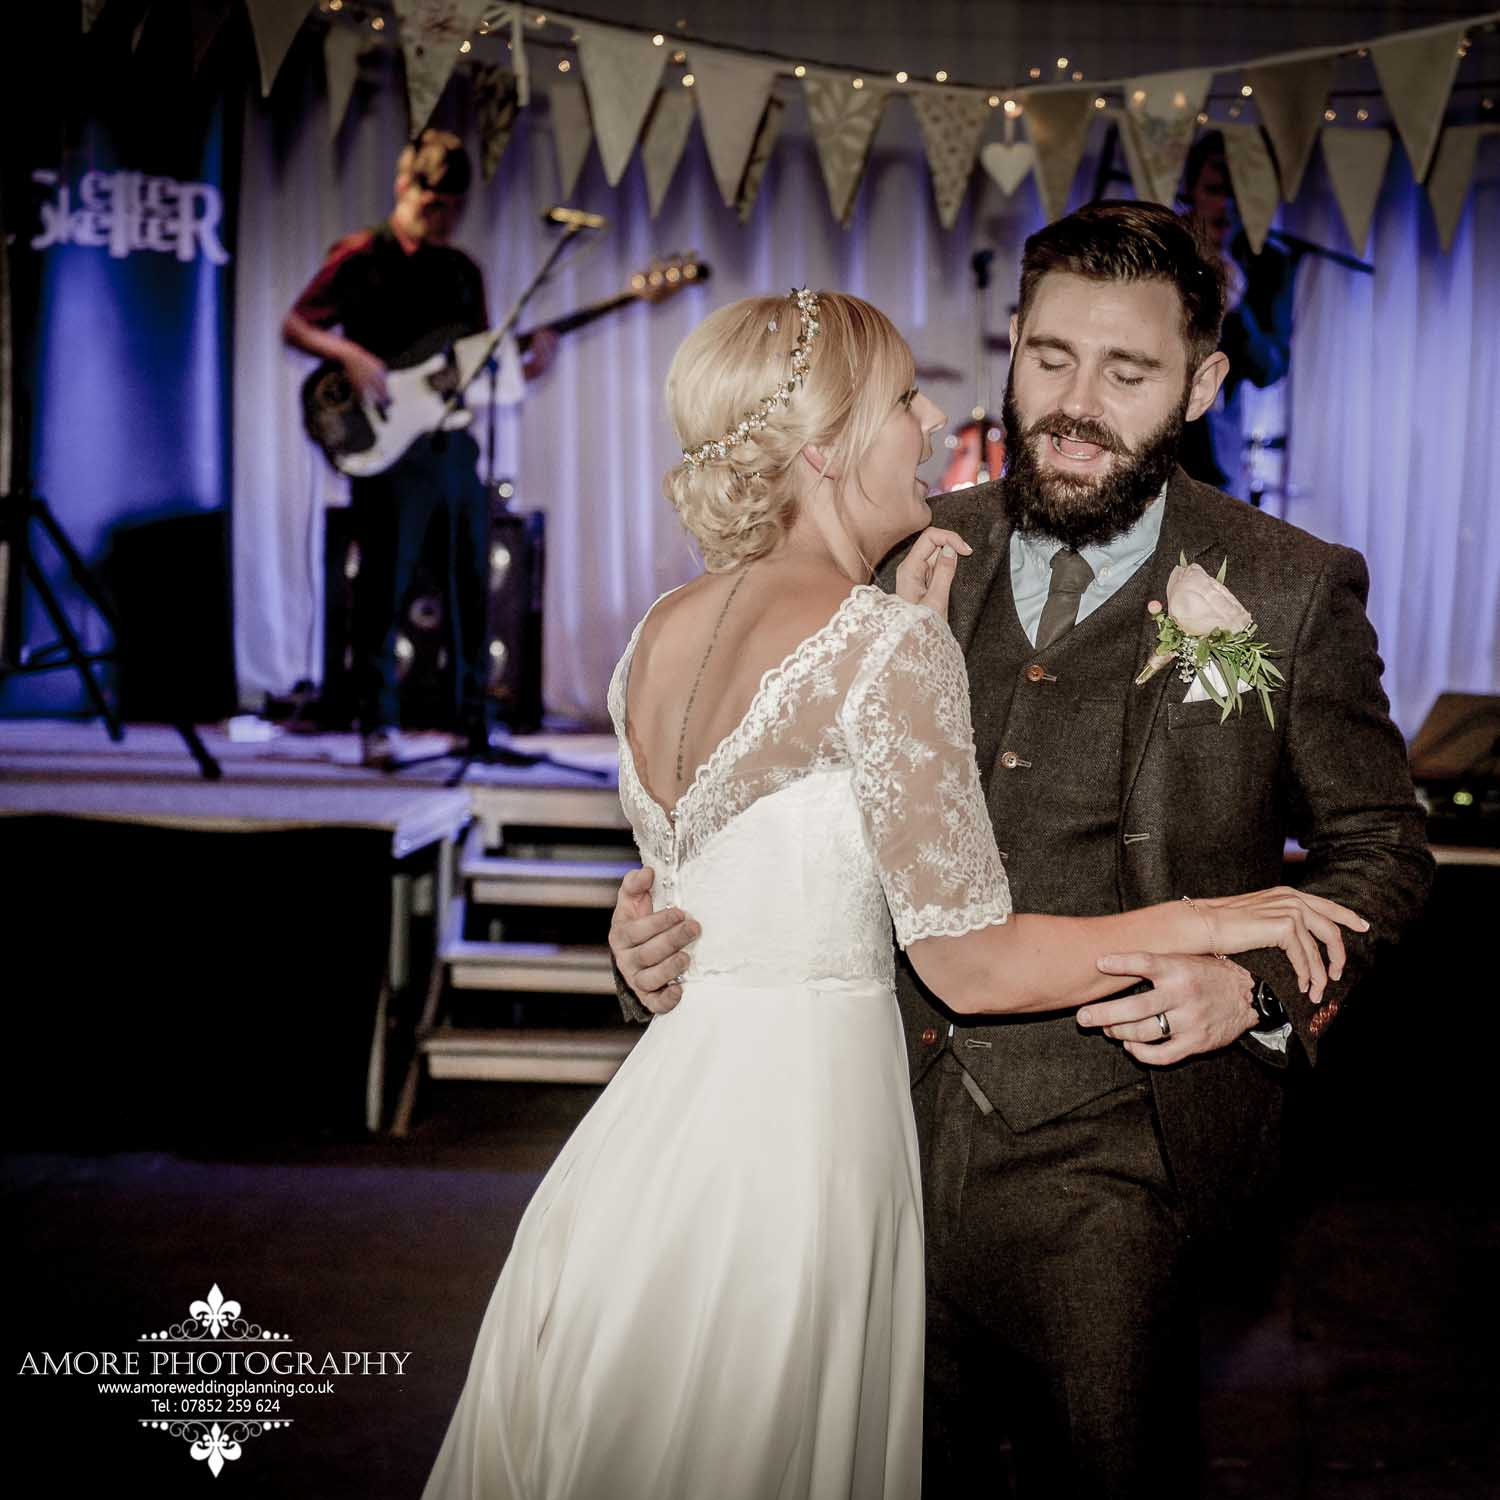 Vintage Wedding Photographer Wakefield North Yorkshire Leeds Wedding Photography Vintage Rustic Barn Weddings (164)